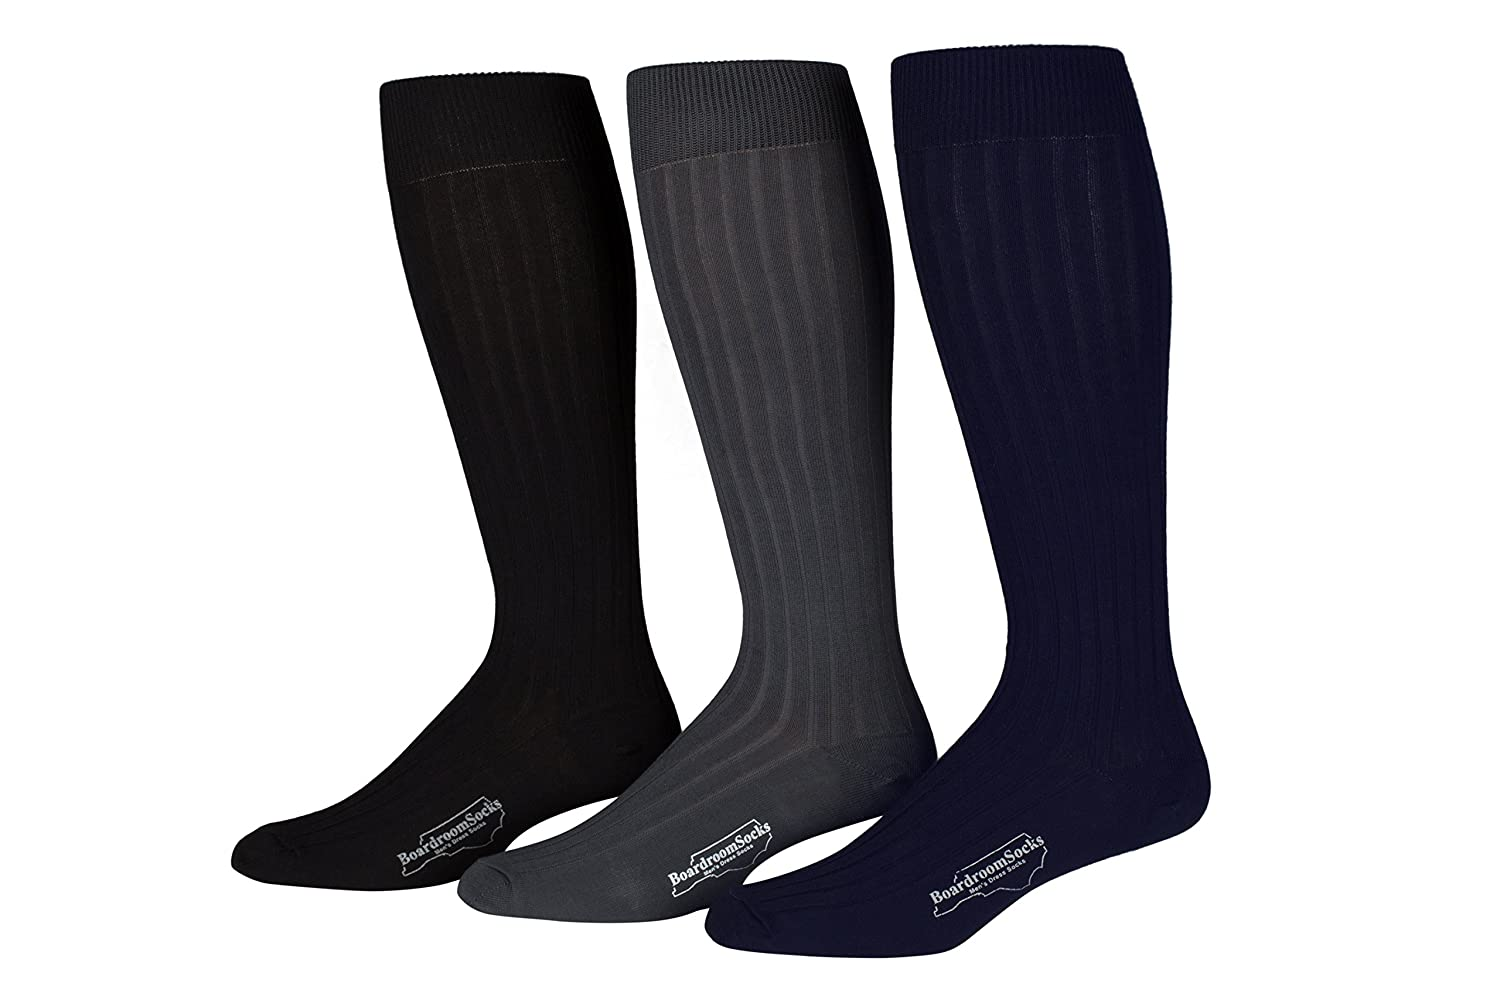 Boardroom Men's Over the Calf Dress Socks